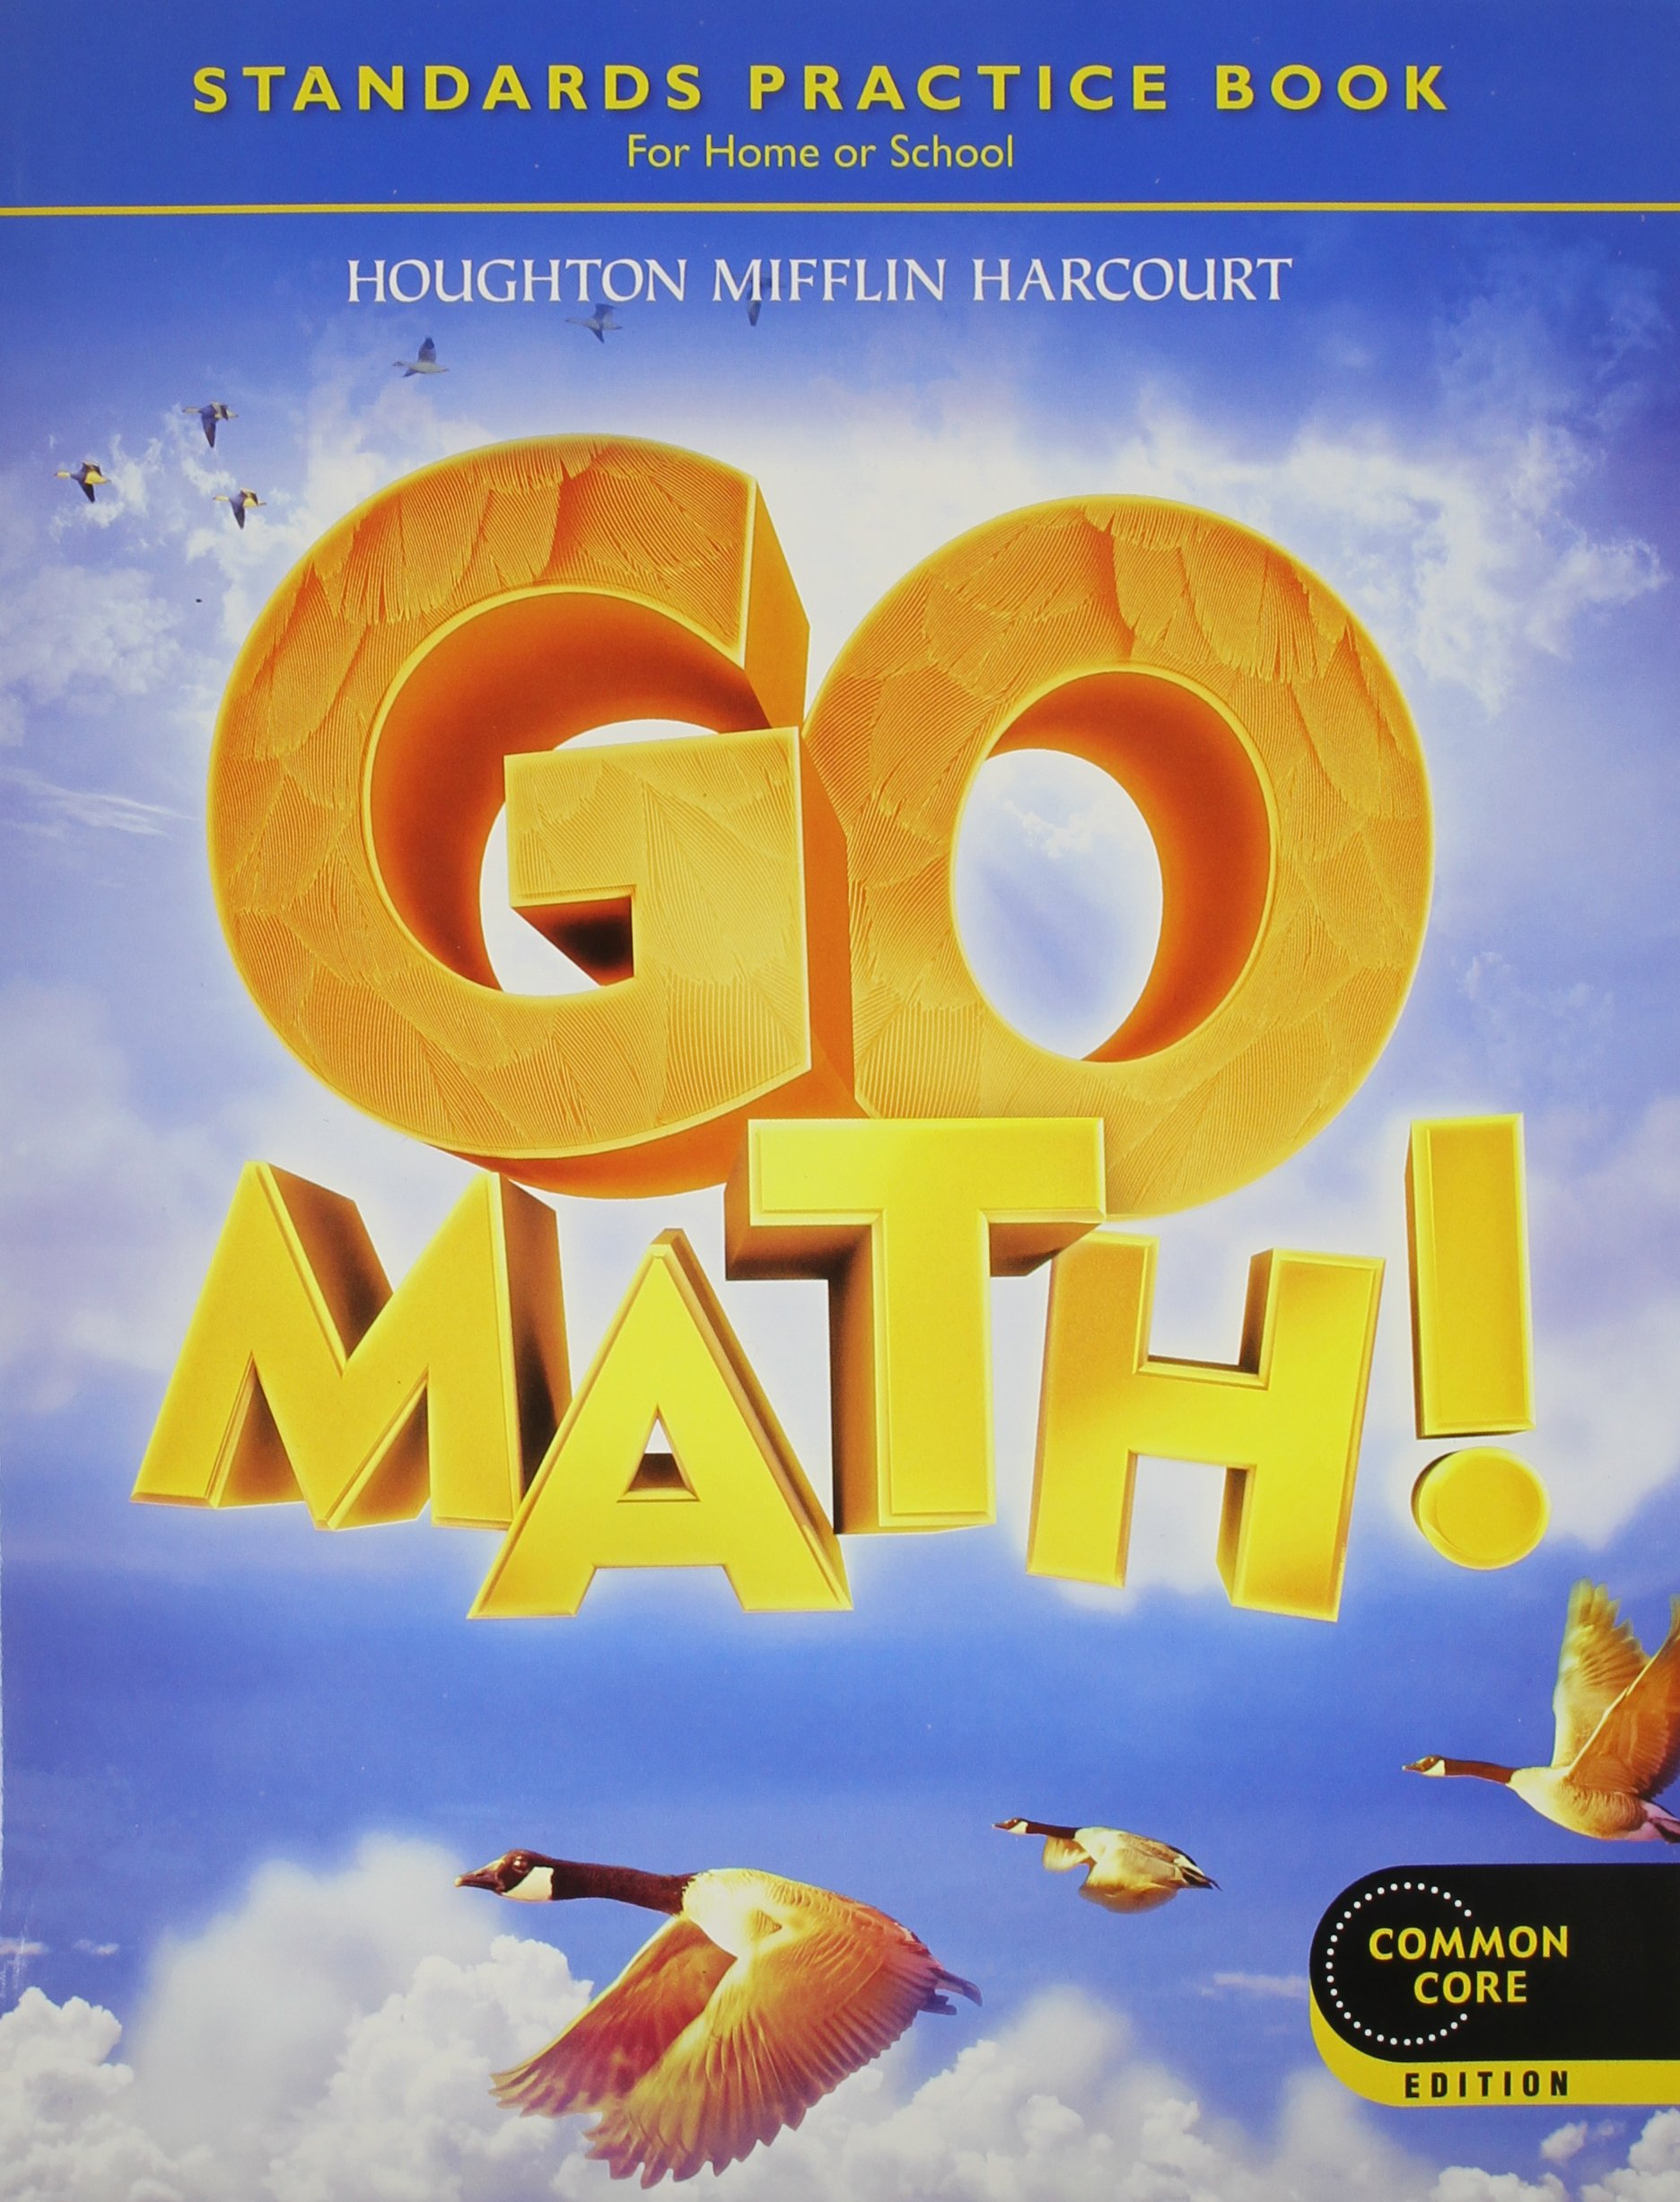 Worksheets Houghton Mifflin Harcourt Math Worksheets Buy Go Math!: Student Practice Book Grade 4 Book Online at